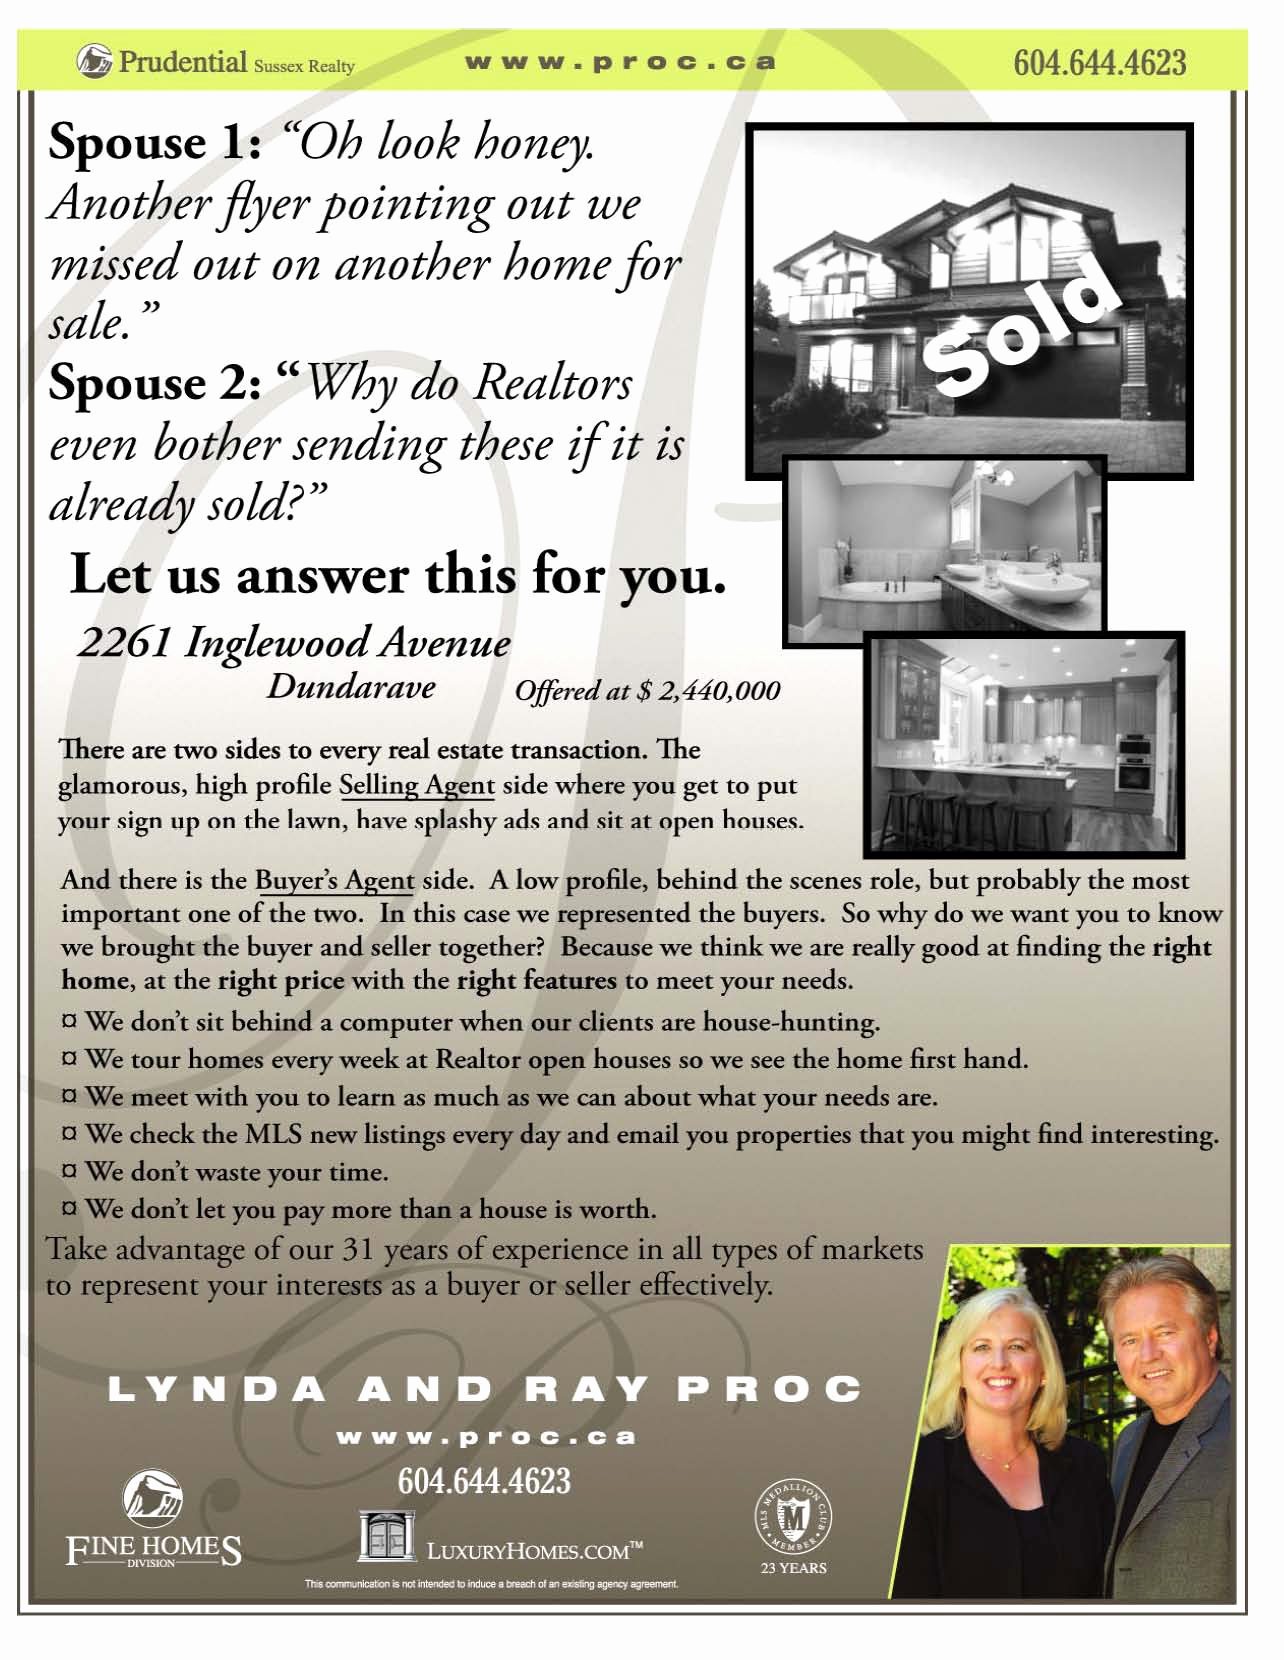 Real Estate Marketing Flyers Unique Realtor Marketing – Do Just sold Flyers Work – Good Ideas